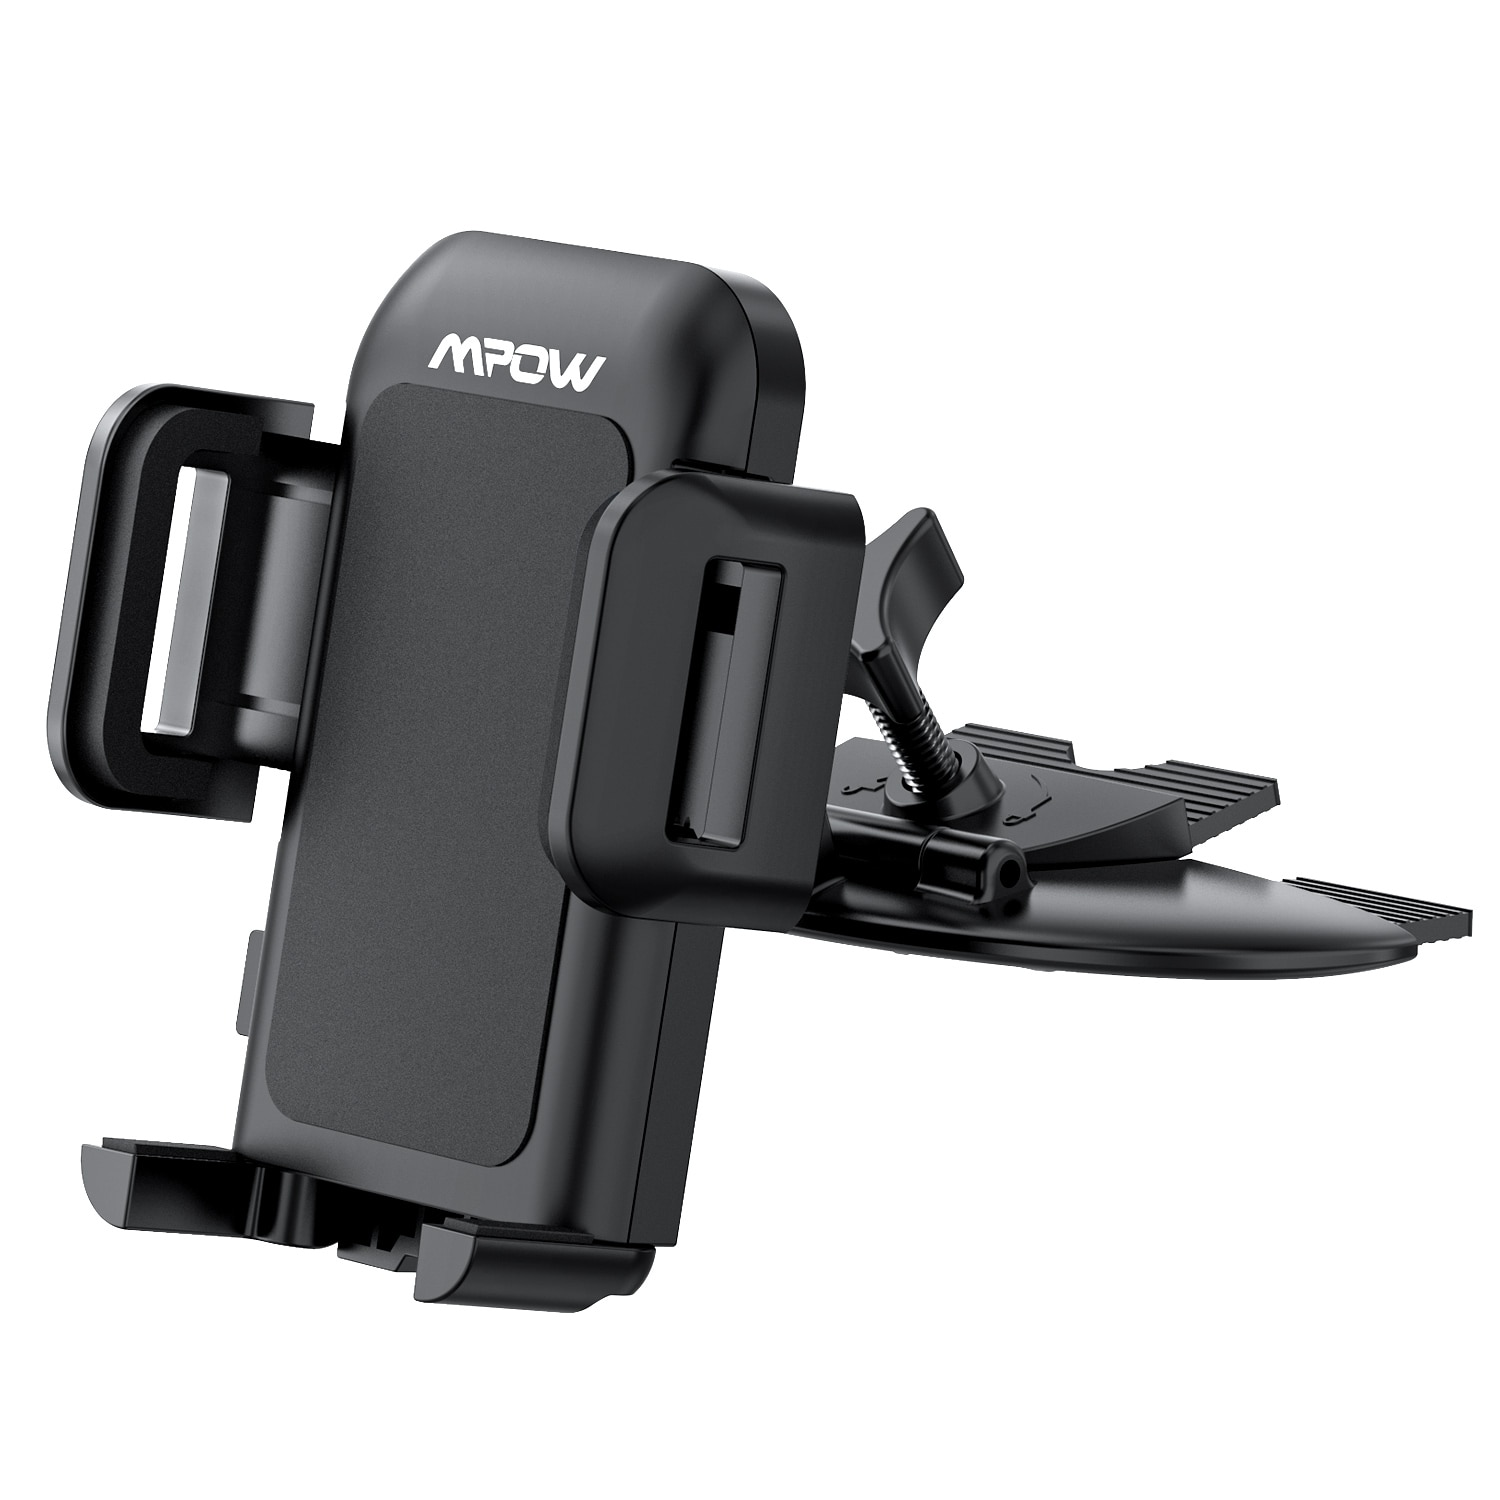 H6e9060f399fb45ff849cf5a0b14820517 - Mpow 051 Car Phone Holder CD Slot Car Phone Mount with Three-Side Grip and One-Touch Design for iPhone 12/12Mini/12Pro/12Pro Max